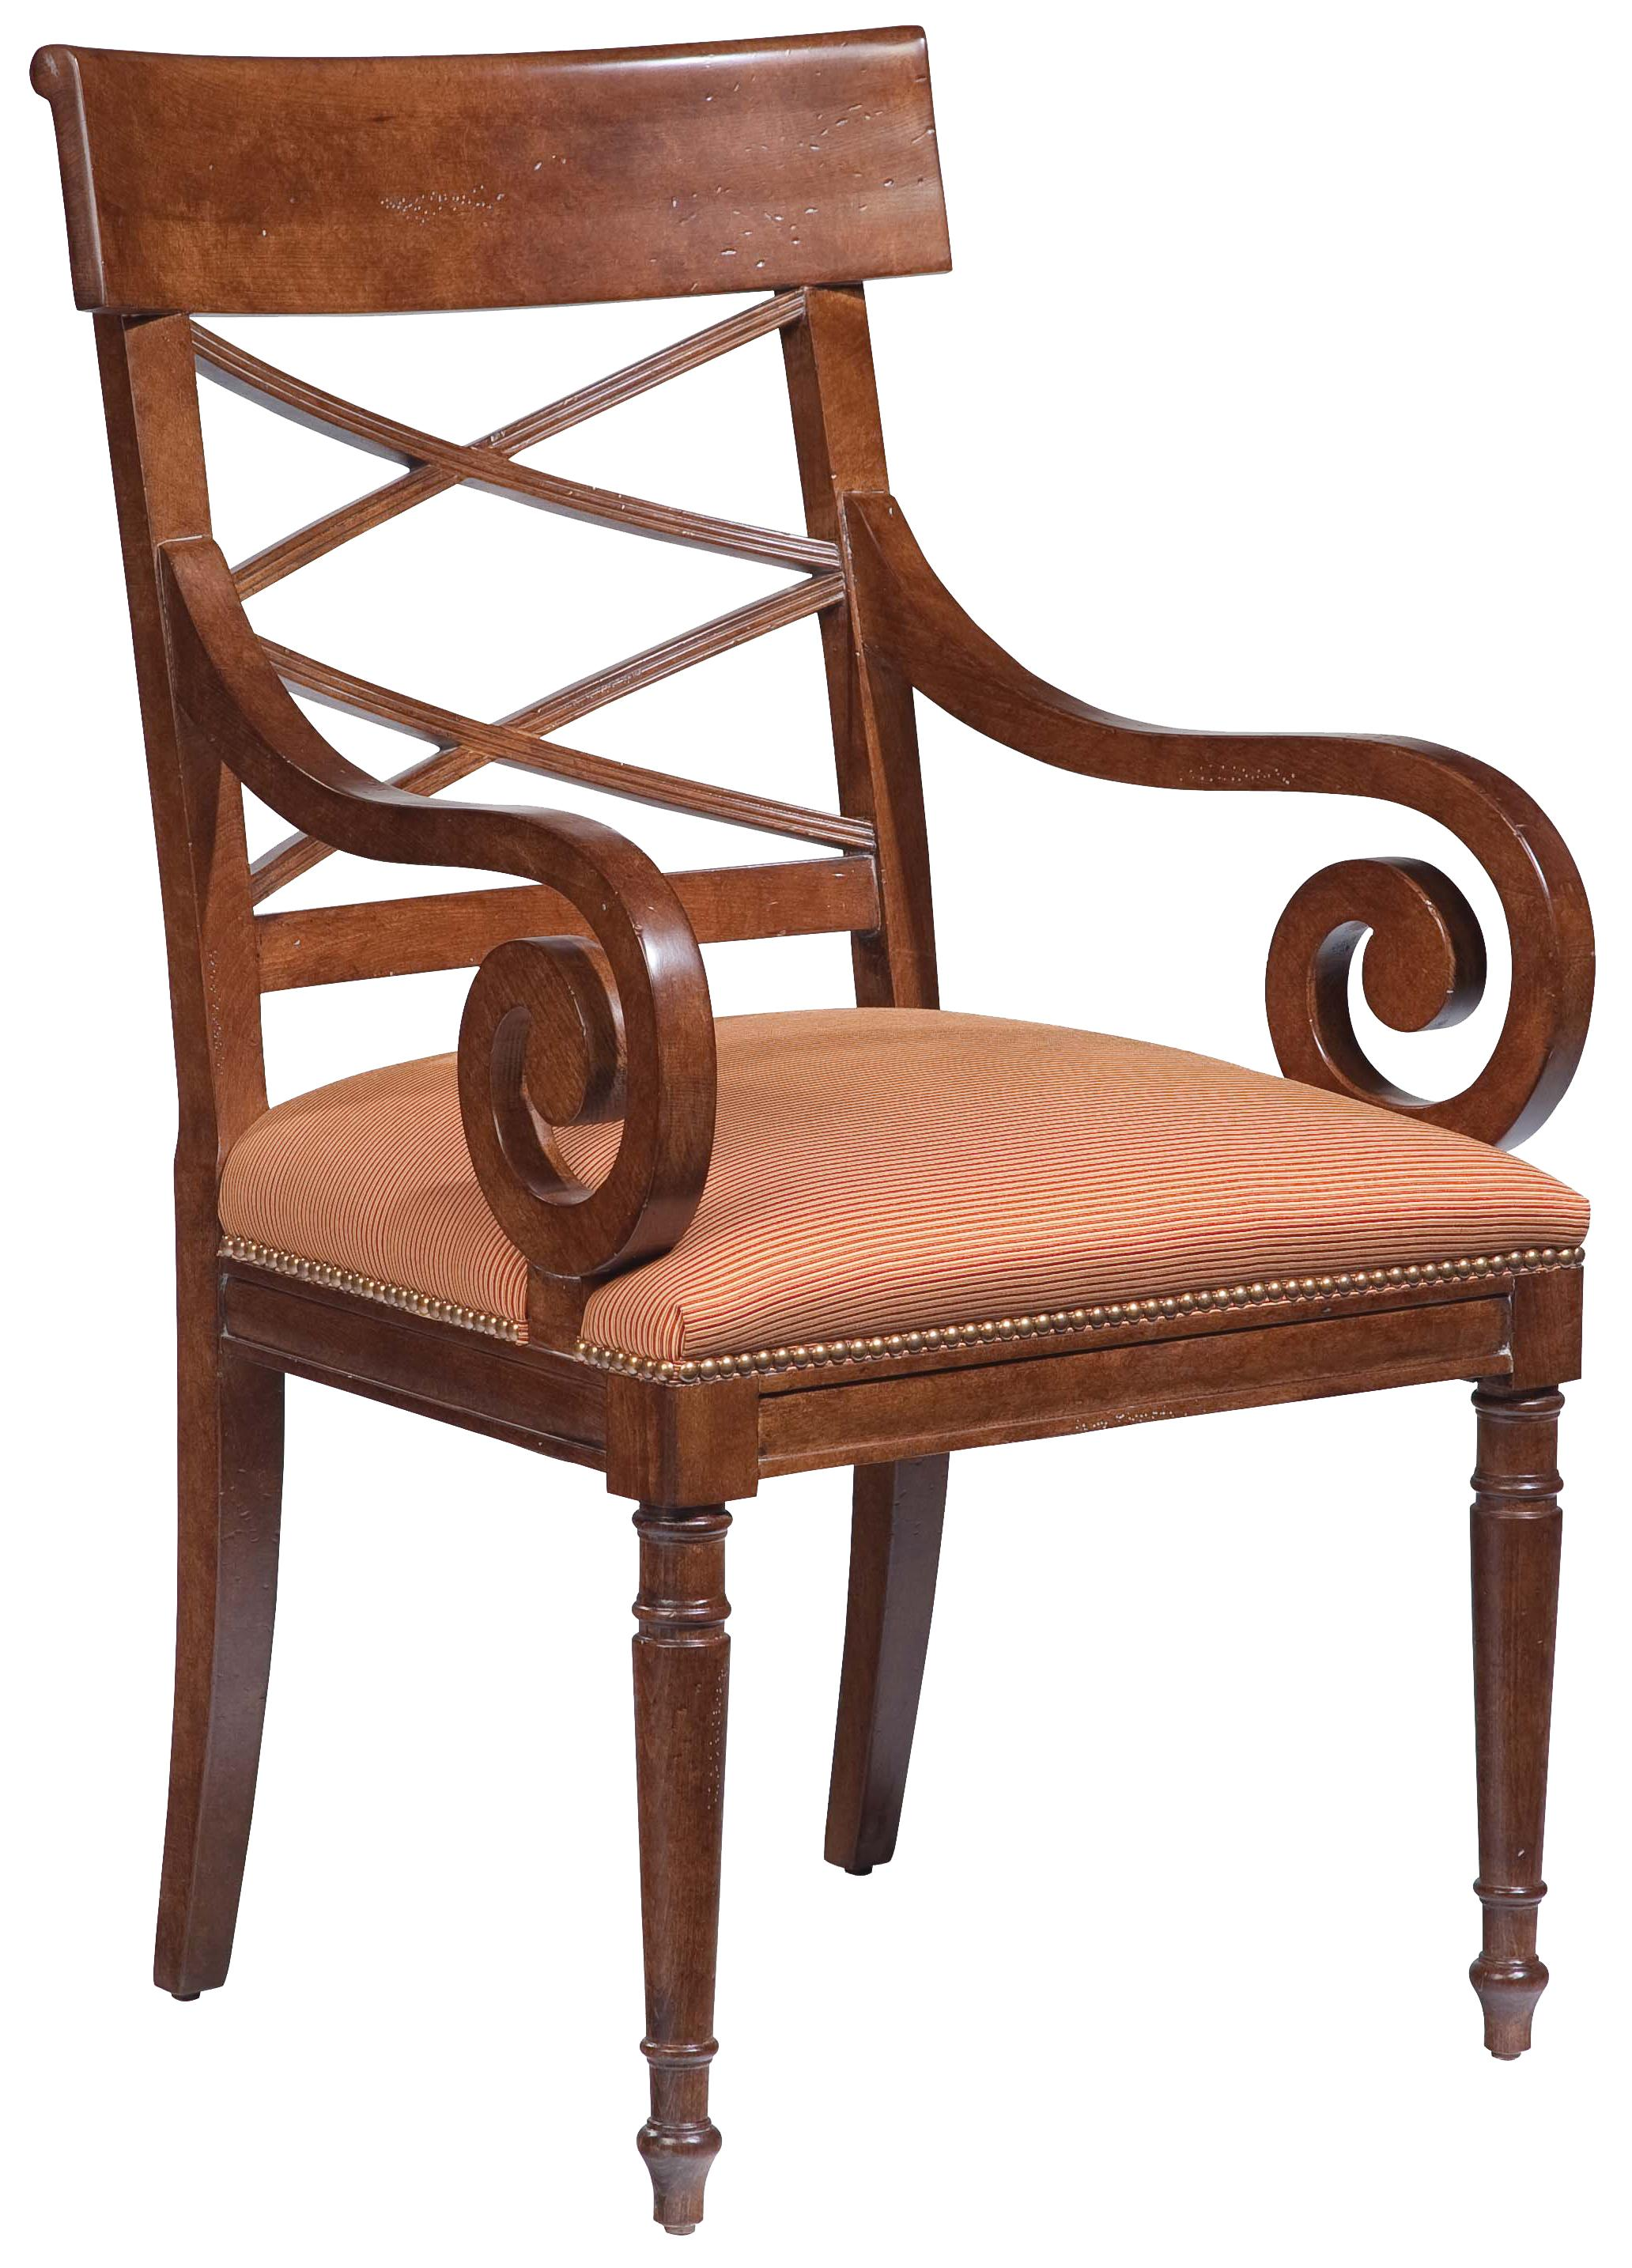 Fairfield Chairs Scroll-Arm Chair - Item Number: 5492-01